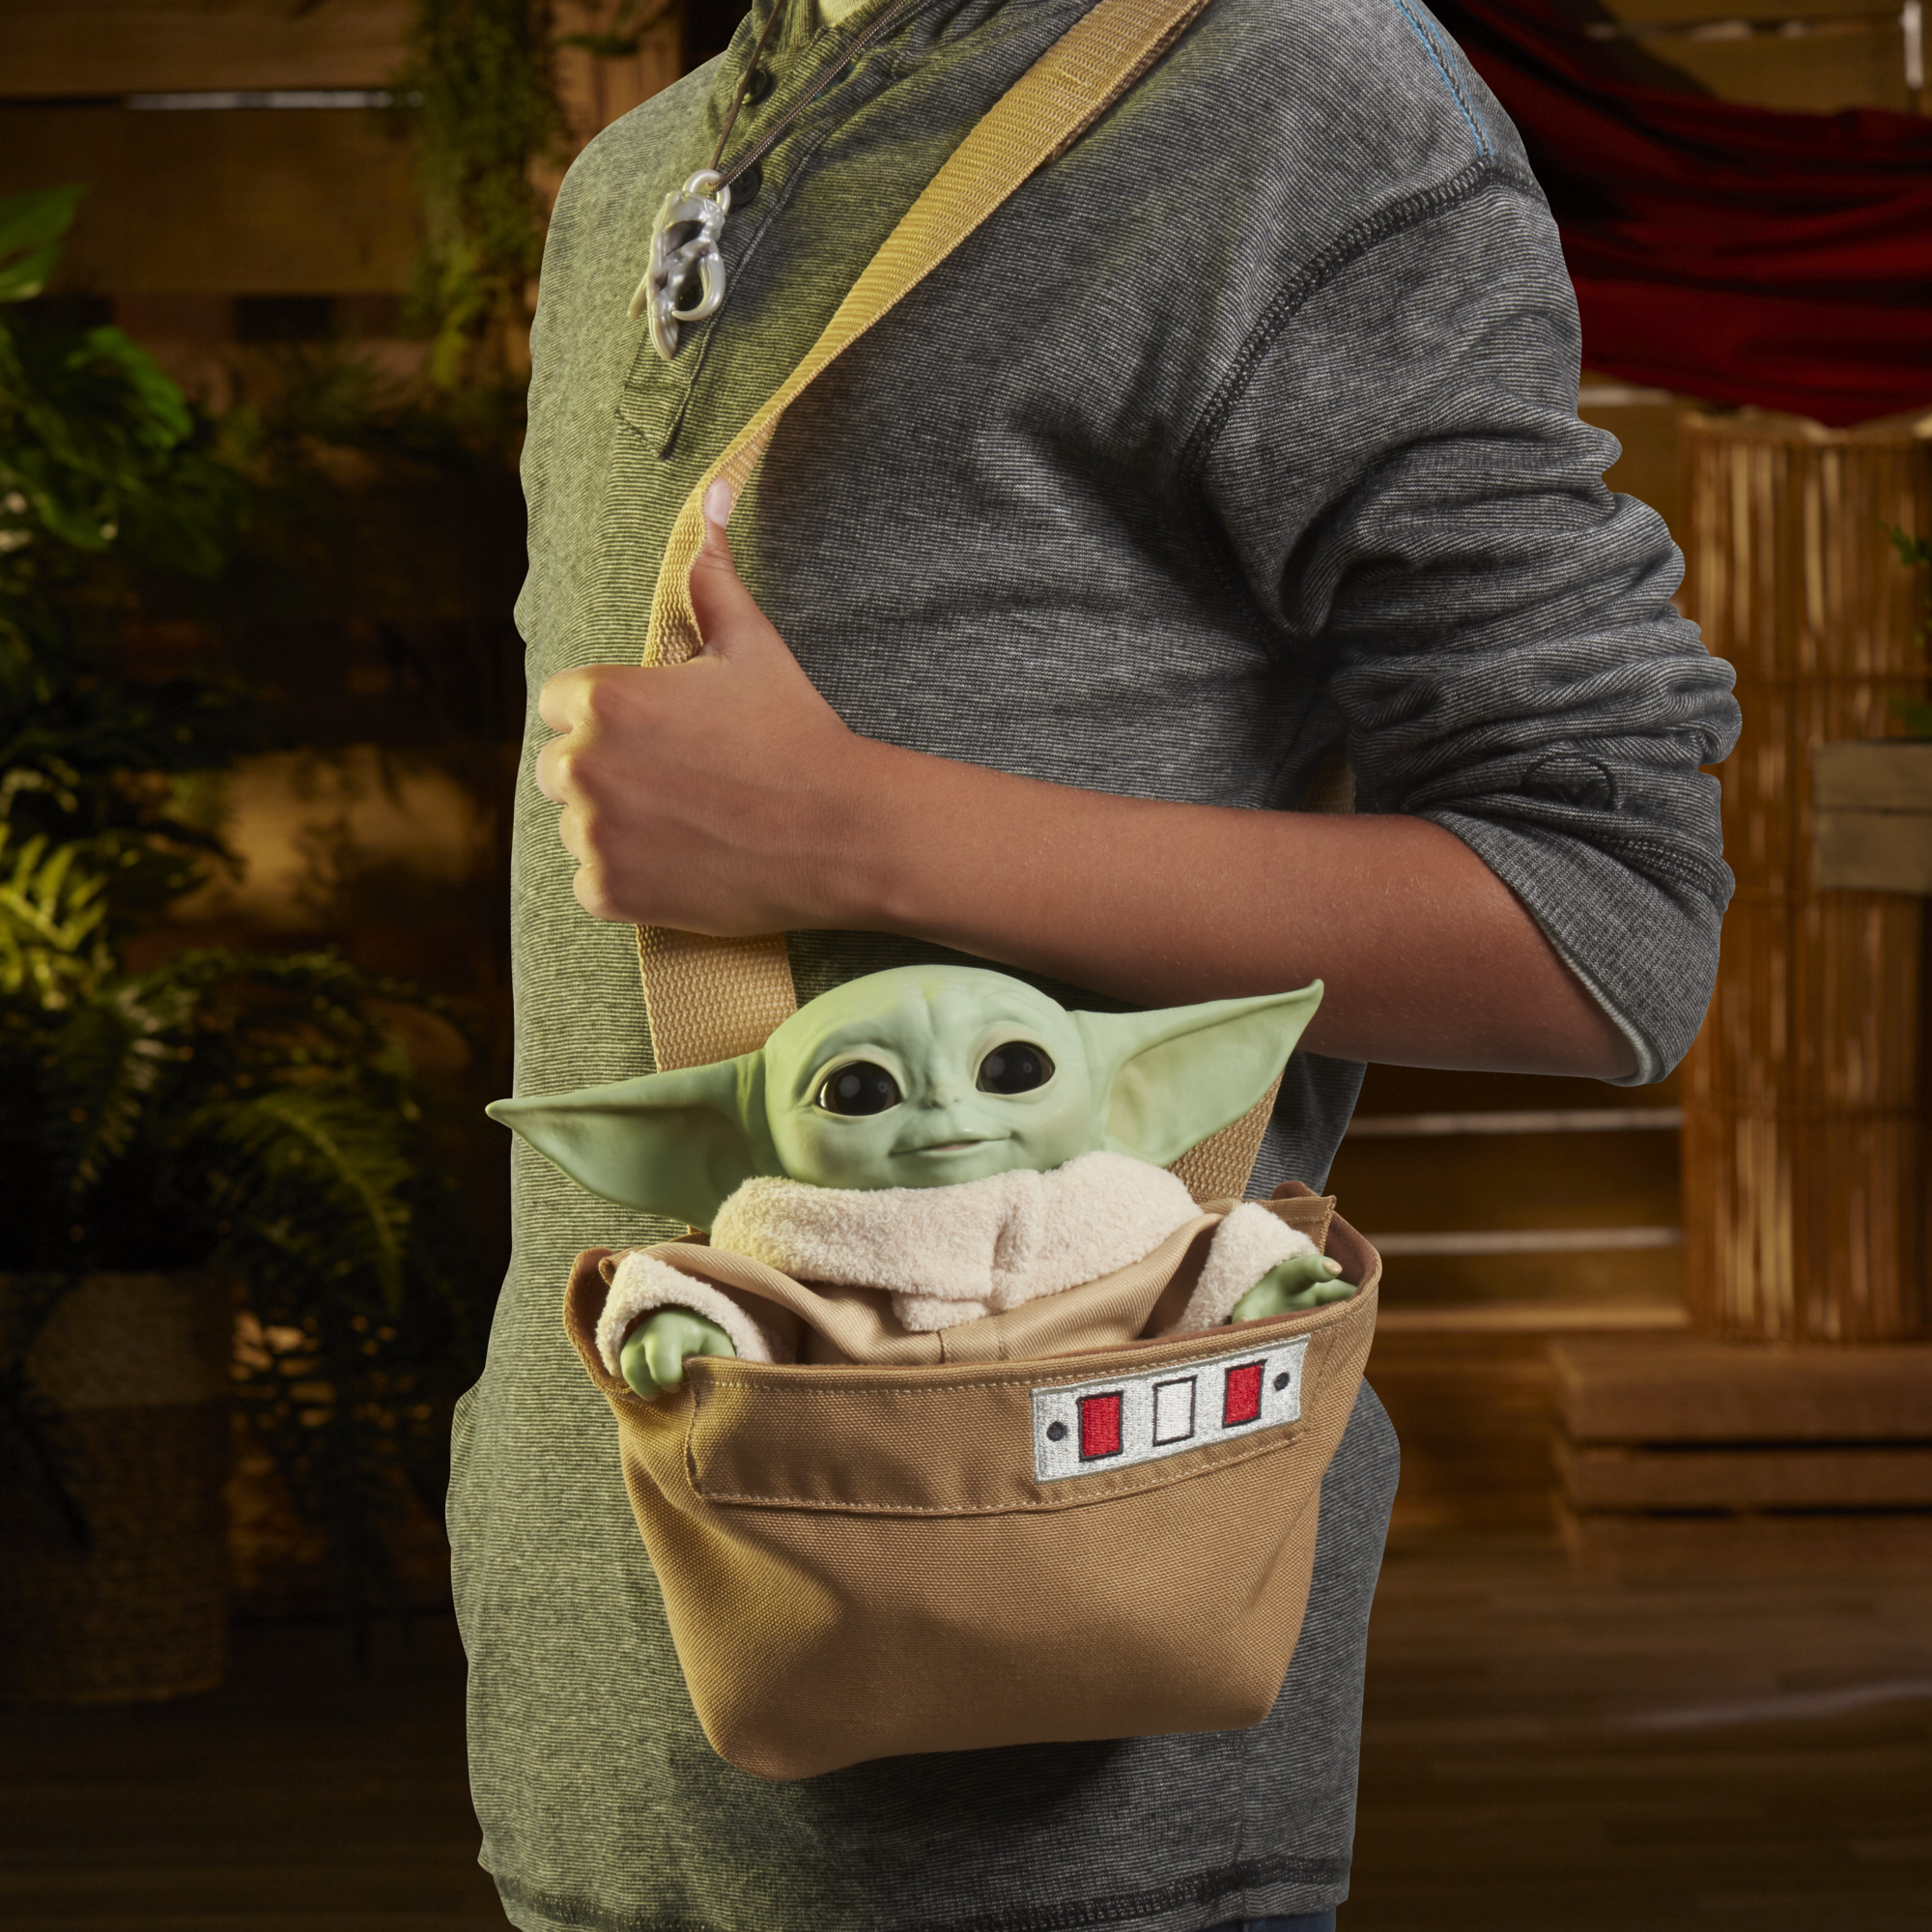 Hasbro's Baby Yoda animatronic toy is finally available to purchase 15